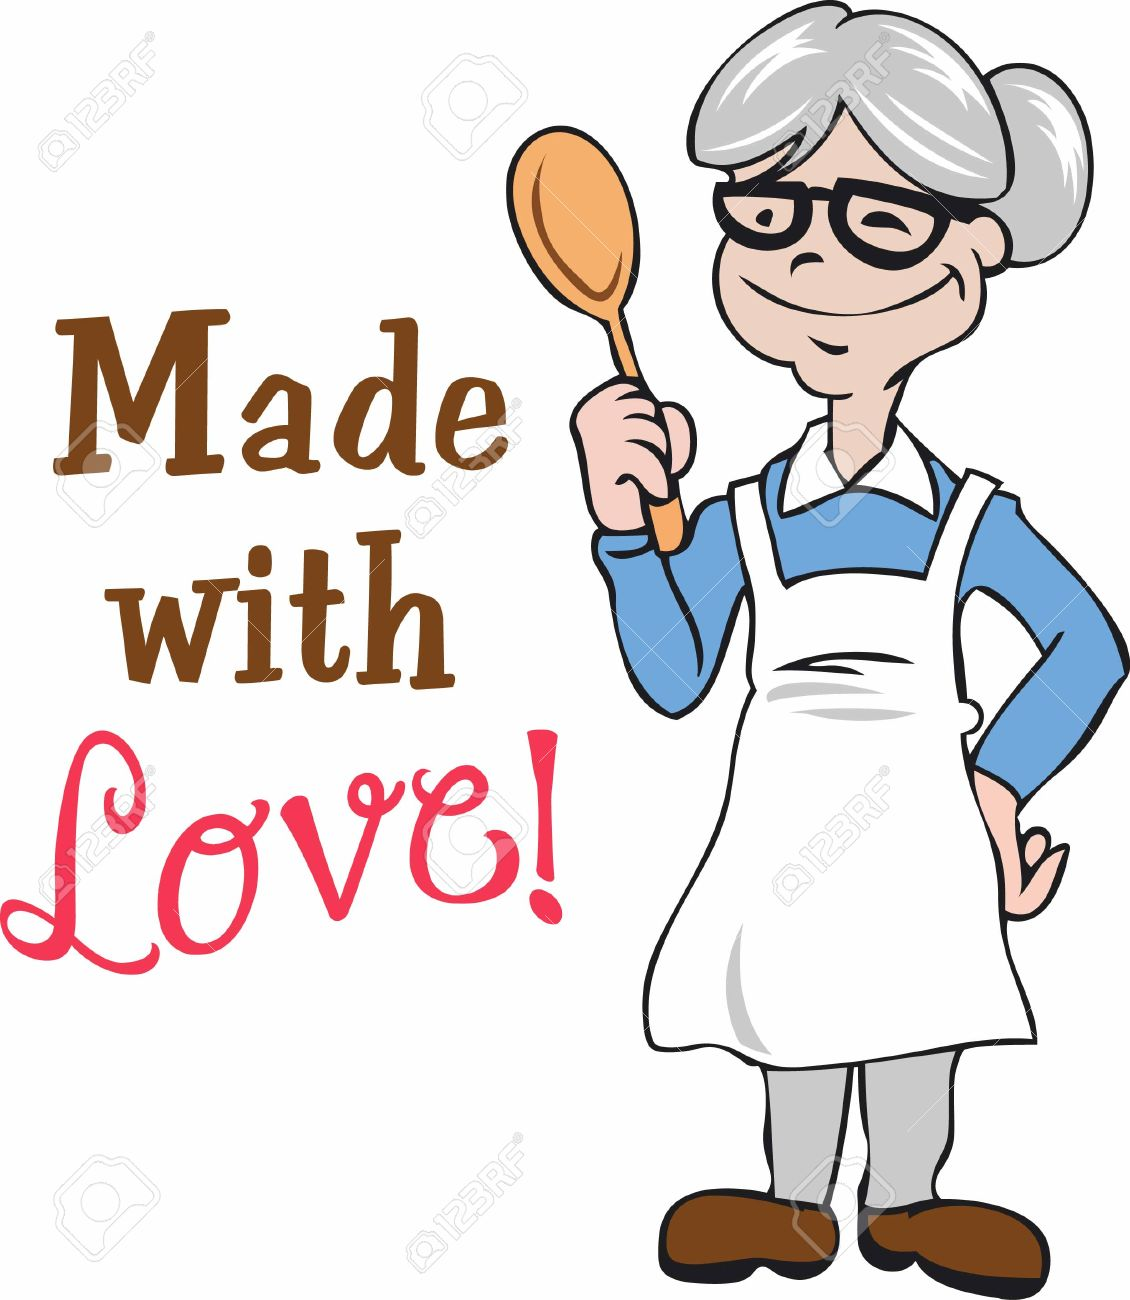 Image result for cartoon images of good cook